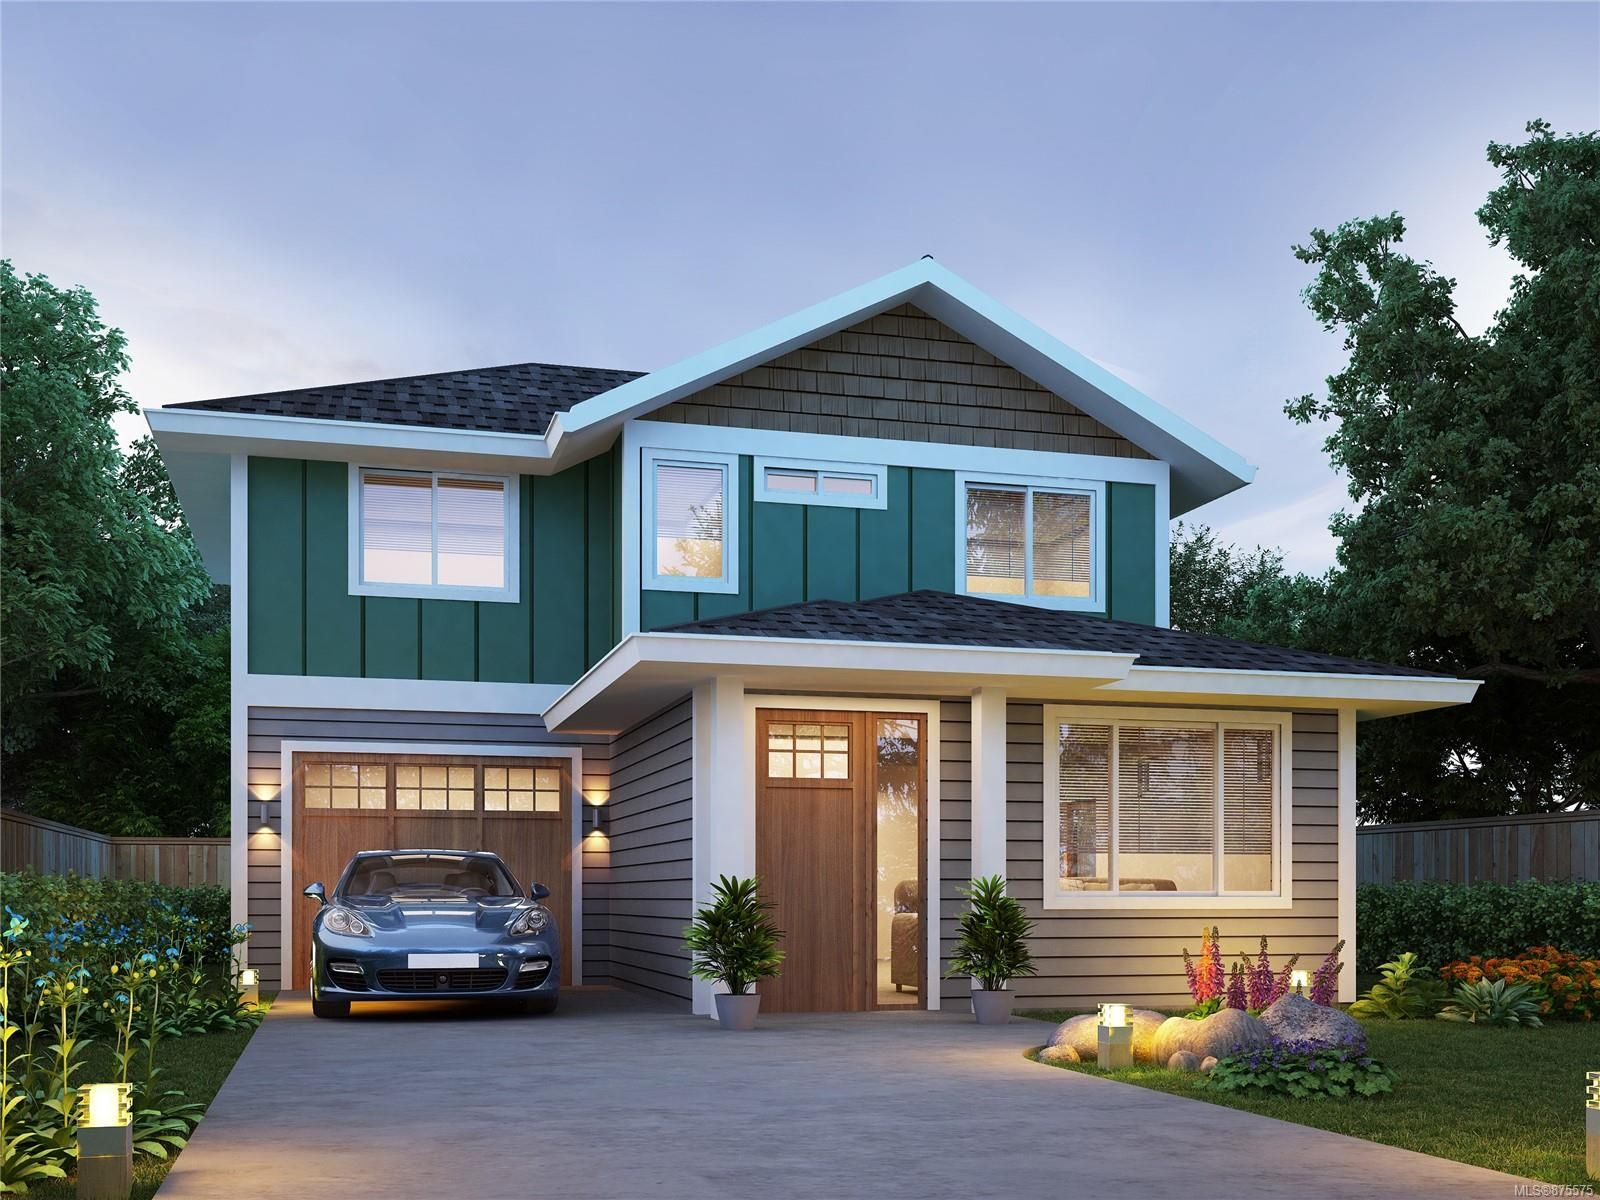 Main Photo: 6753 Marisa Crt in : CS Keating House for sale (Central Saanich)  : MLS®# 875575